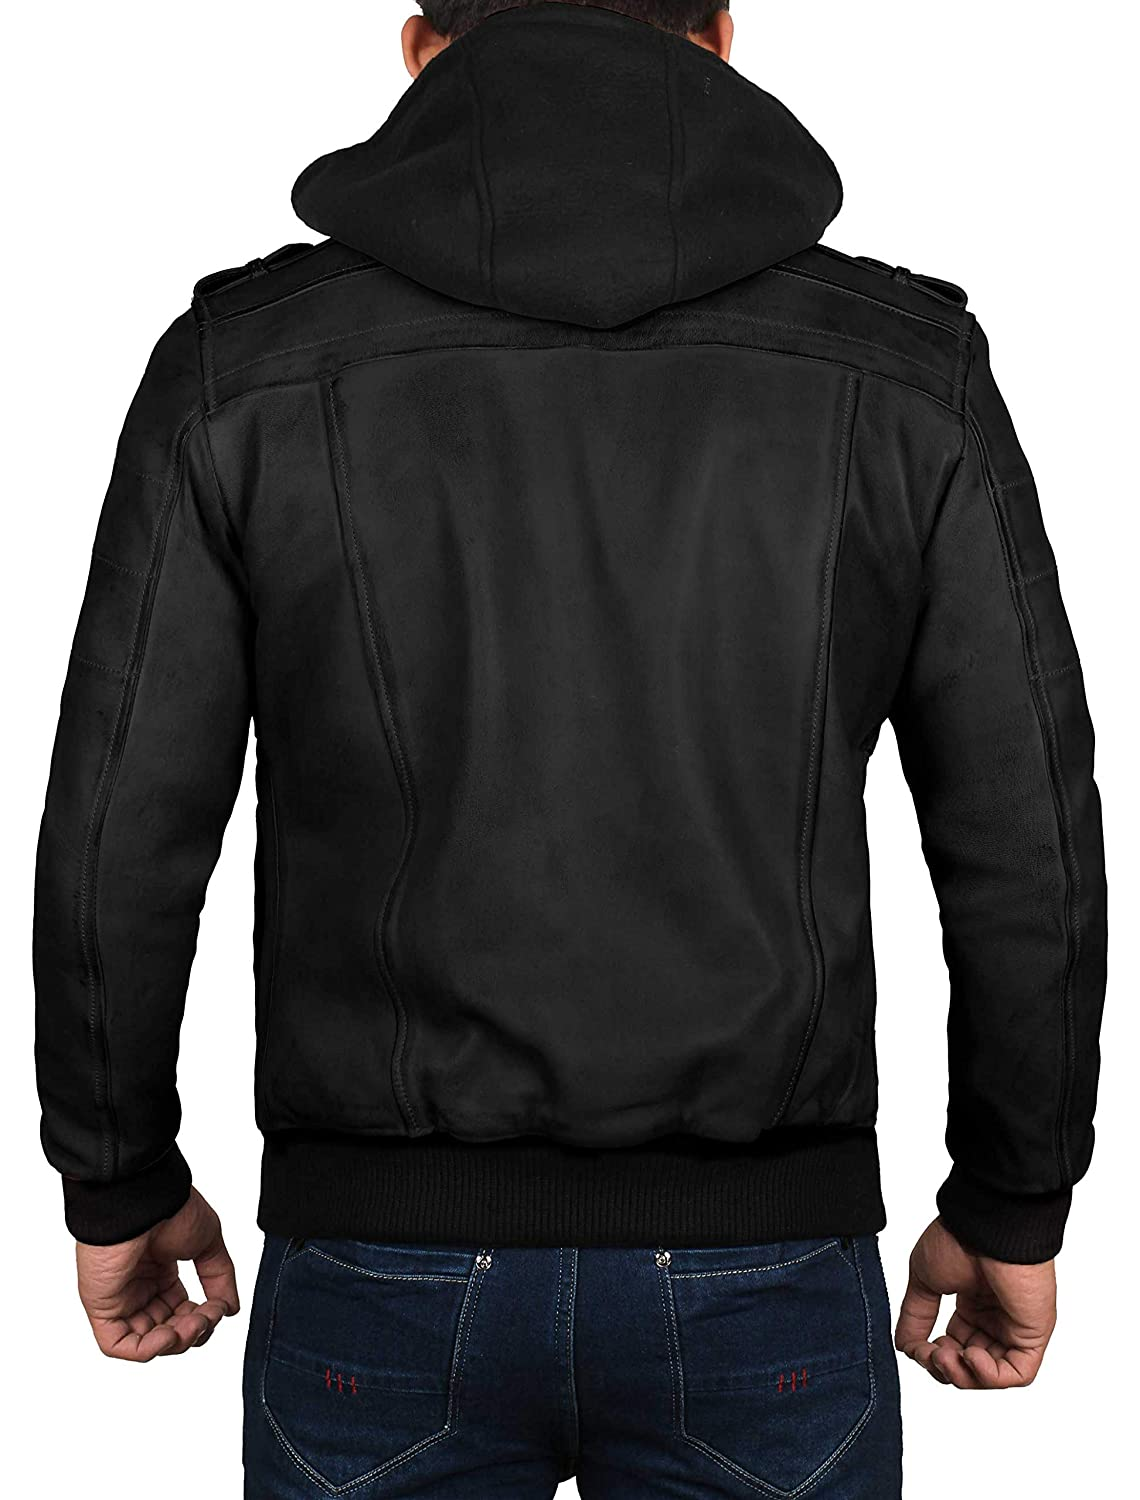 d29703aea7c Leather Bomber Jackets for Men - Black   Brown Leather Jacket with Hood